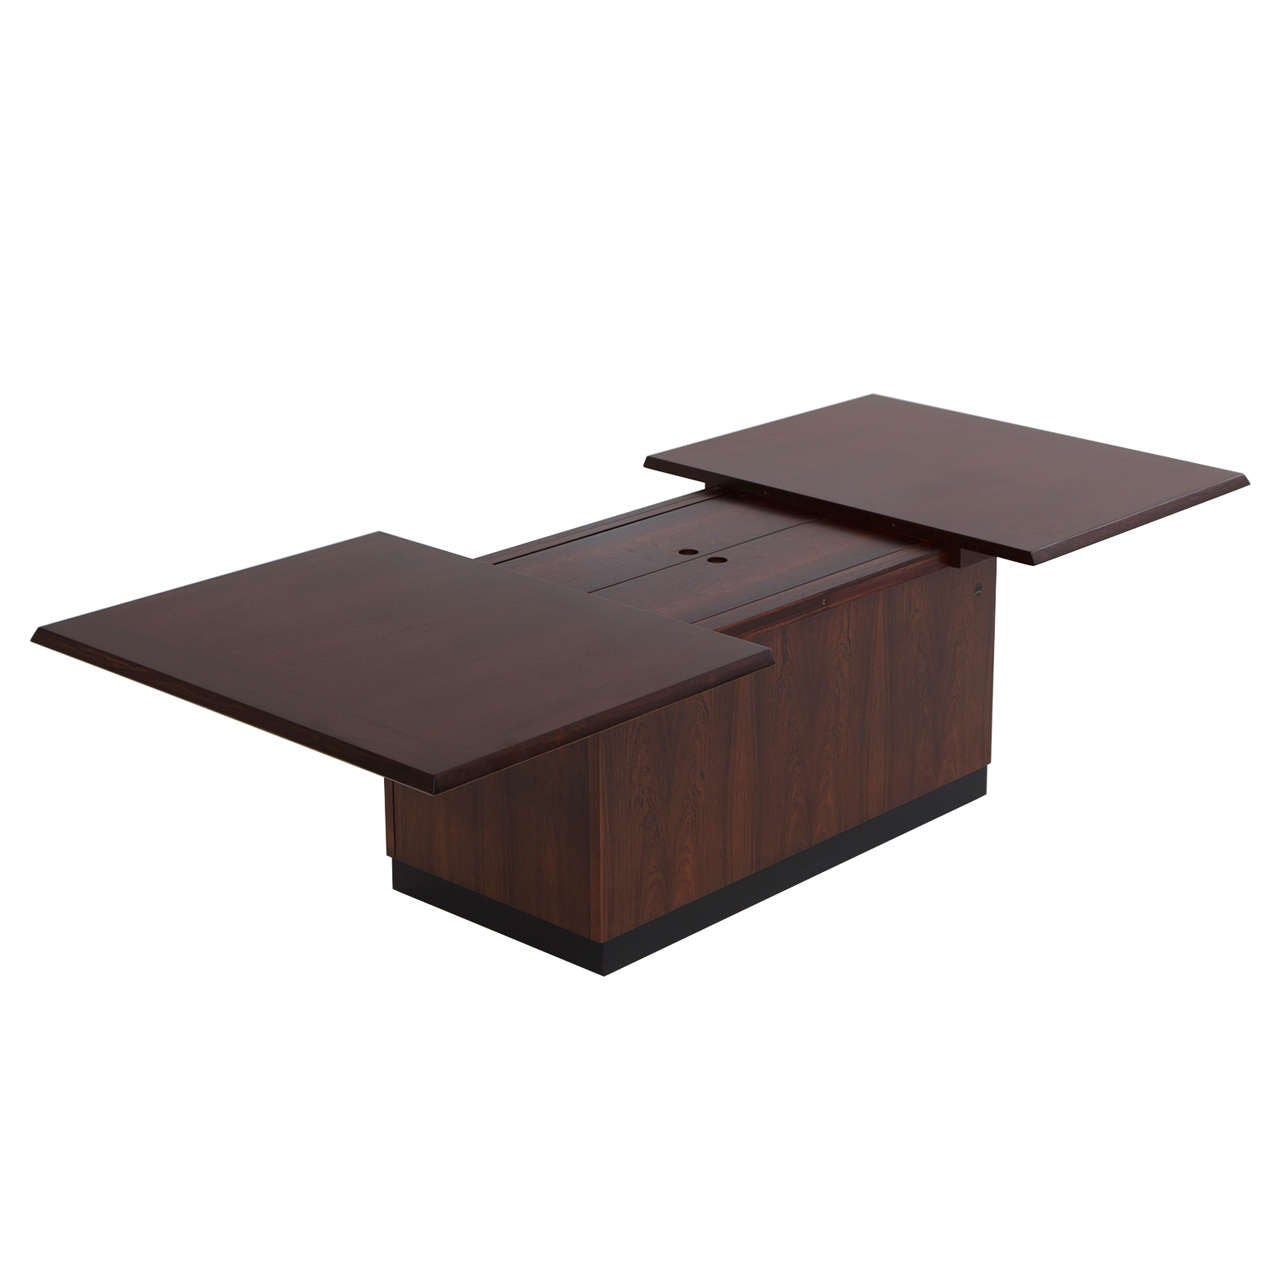 Luxury Danish Rosewood Coffee Table With Dry Bar For Sale At 1stdibs